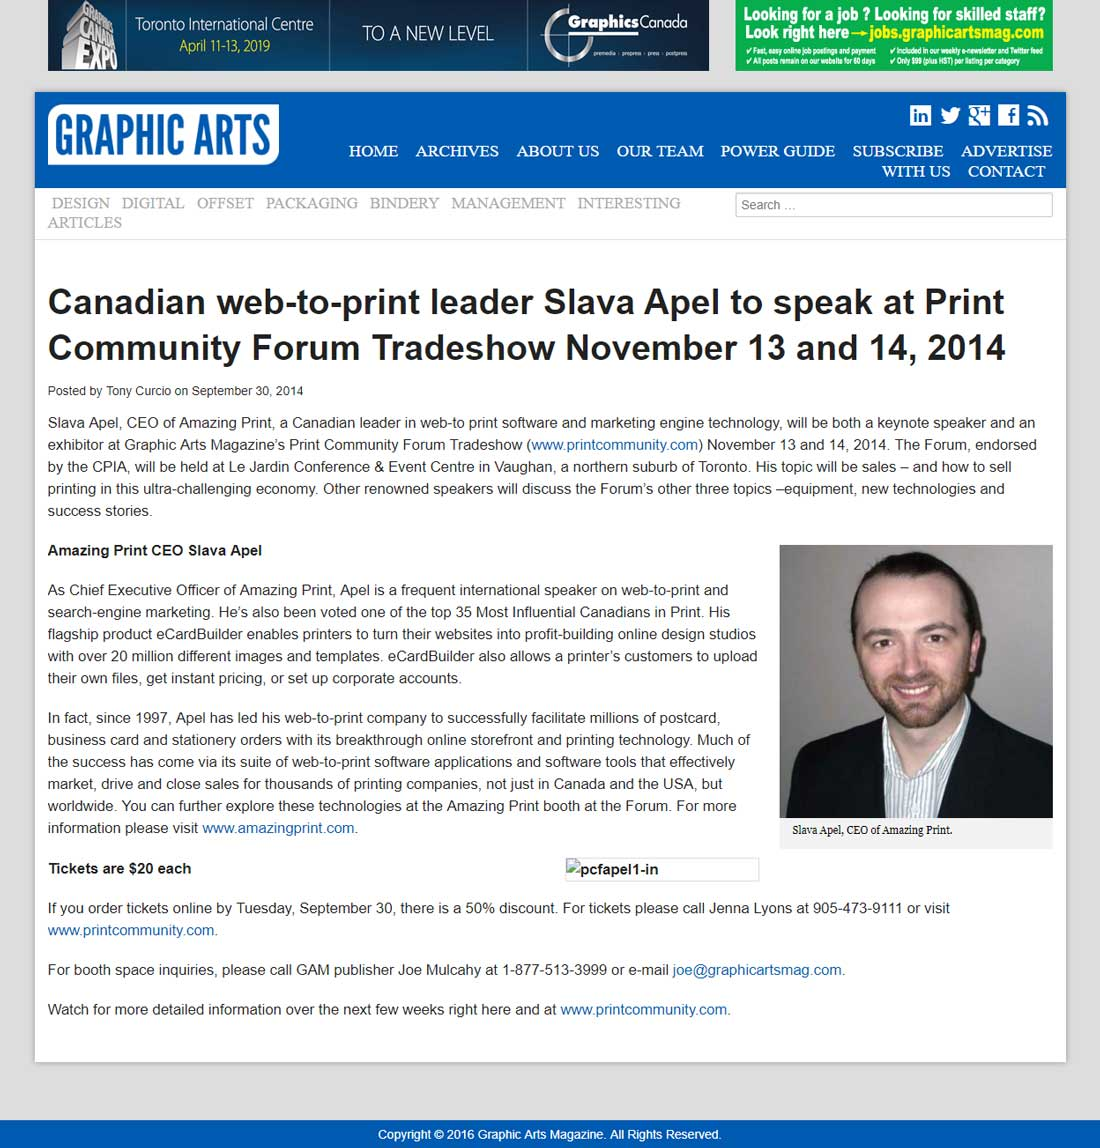 Canadian web-to-print leader Slava Apel to speak at Print Community Forum Tradeshow November 13 and 14, 2014